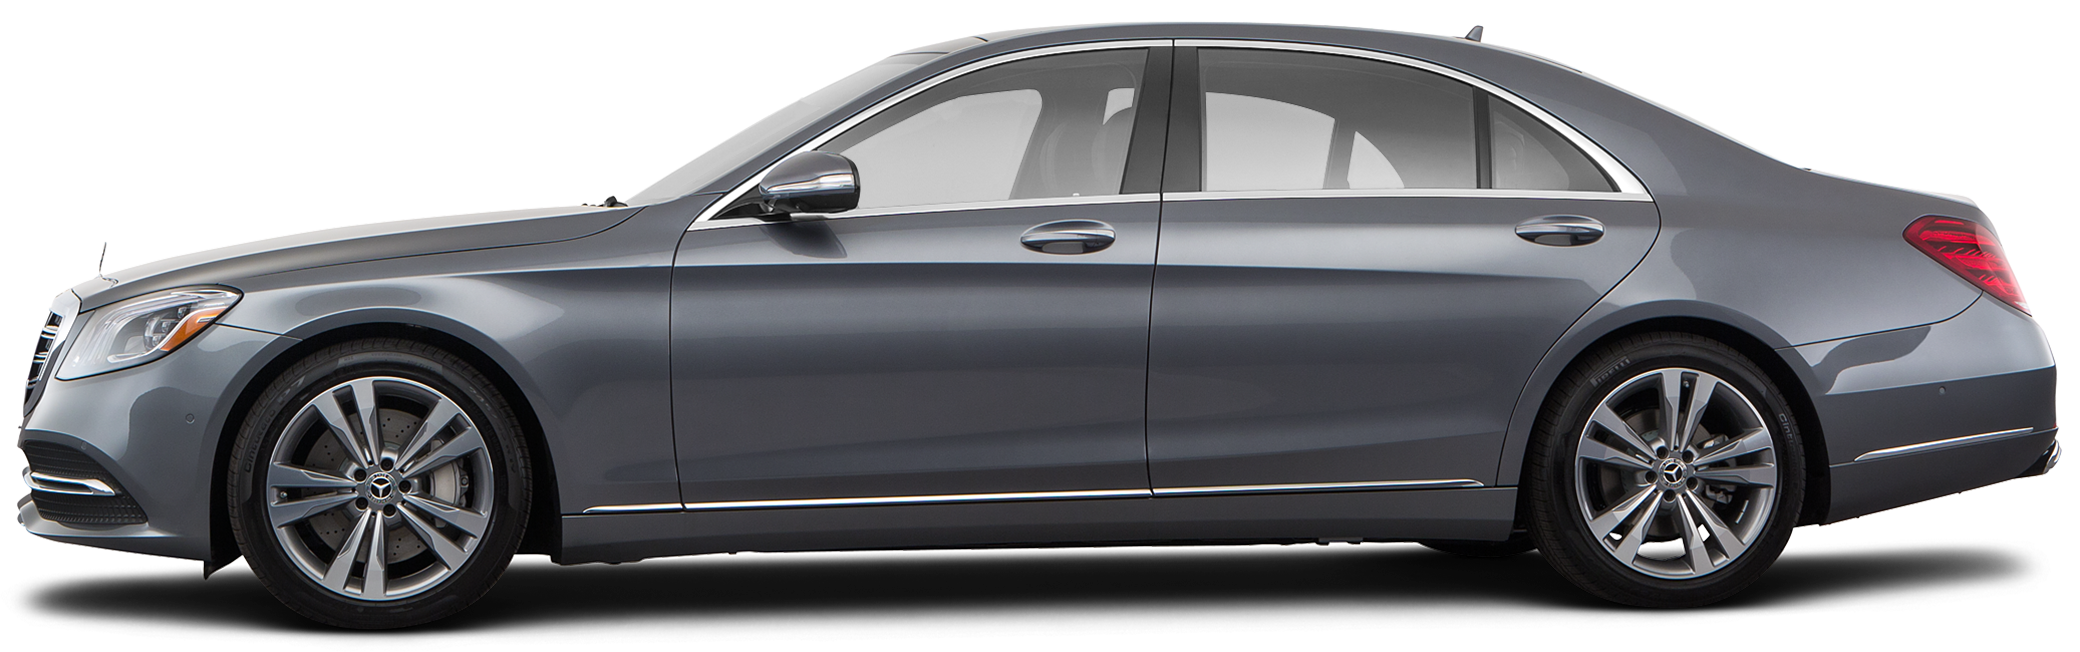 2019 Mercedes-Benz S-Class Sedan S 450